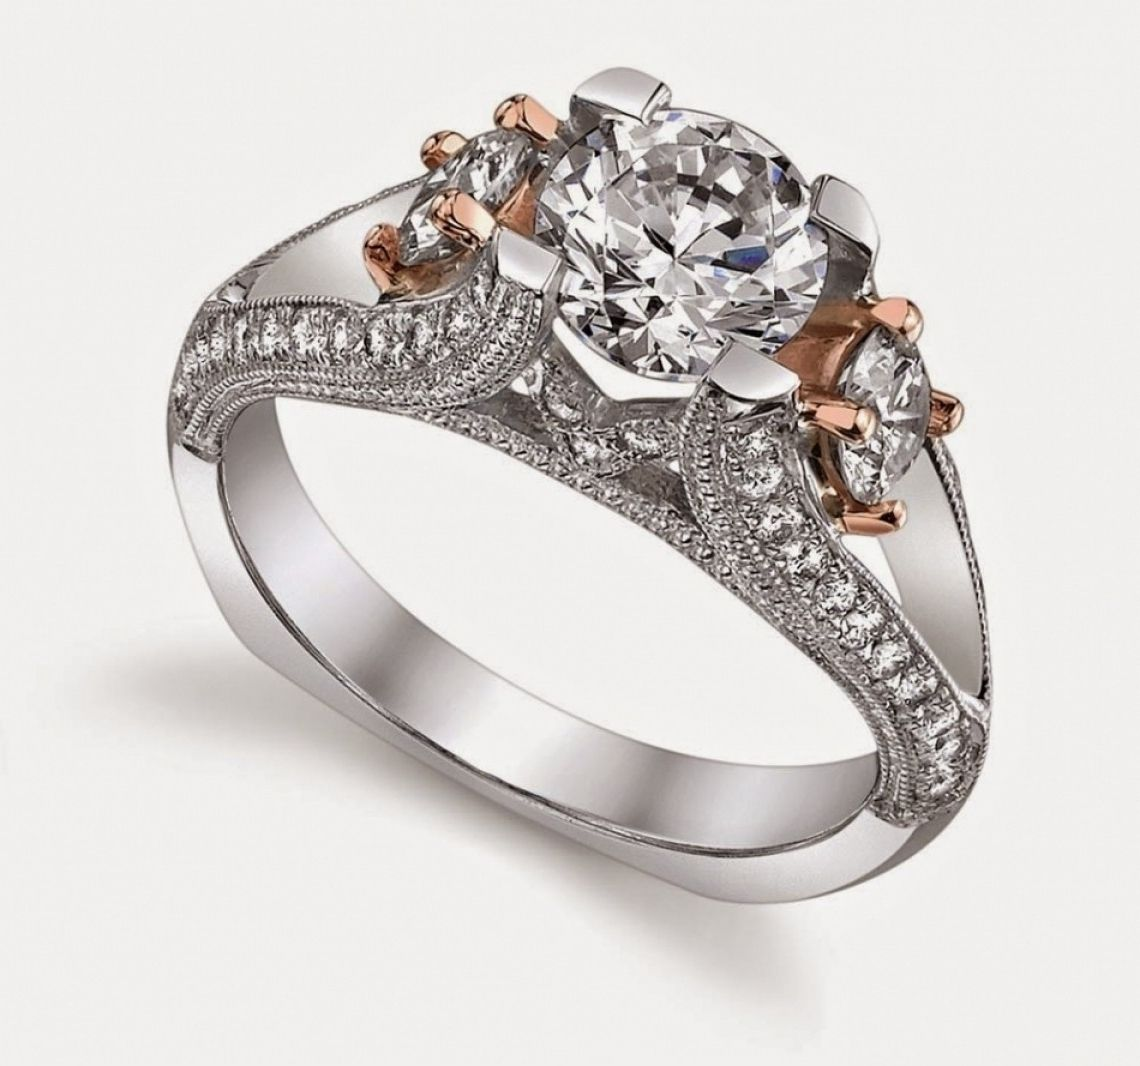 Most Expensive Diamond Ring In The World 2017 | Ring | Pinterest ...